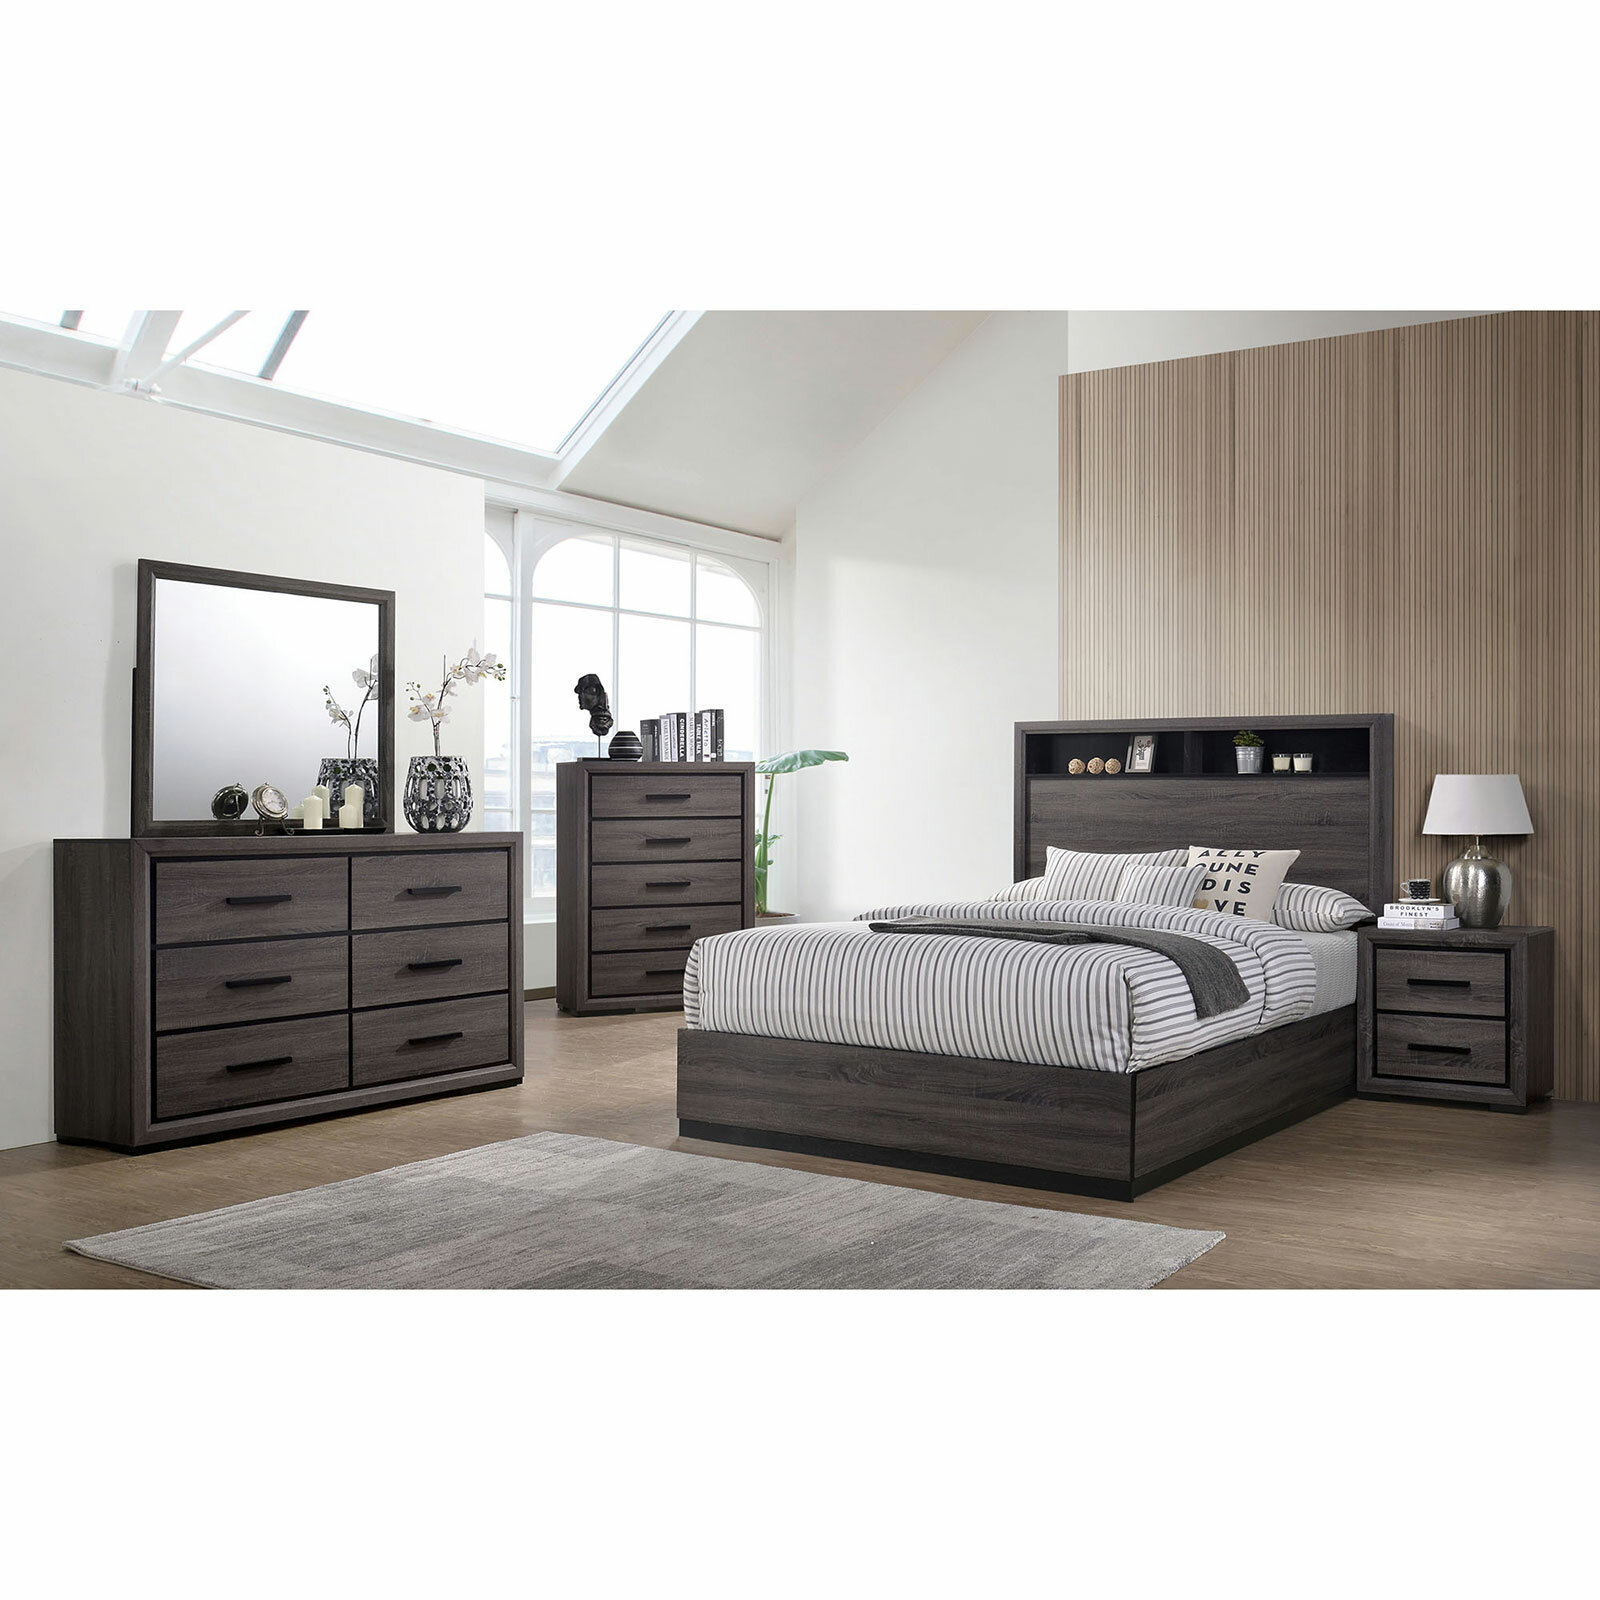 Brayden Studio Chevelle Standard Configurable Bedroom Set